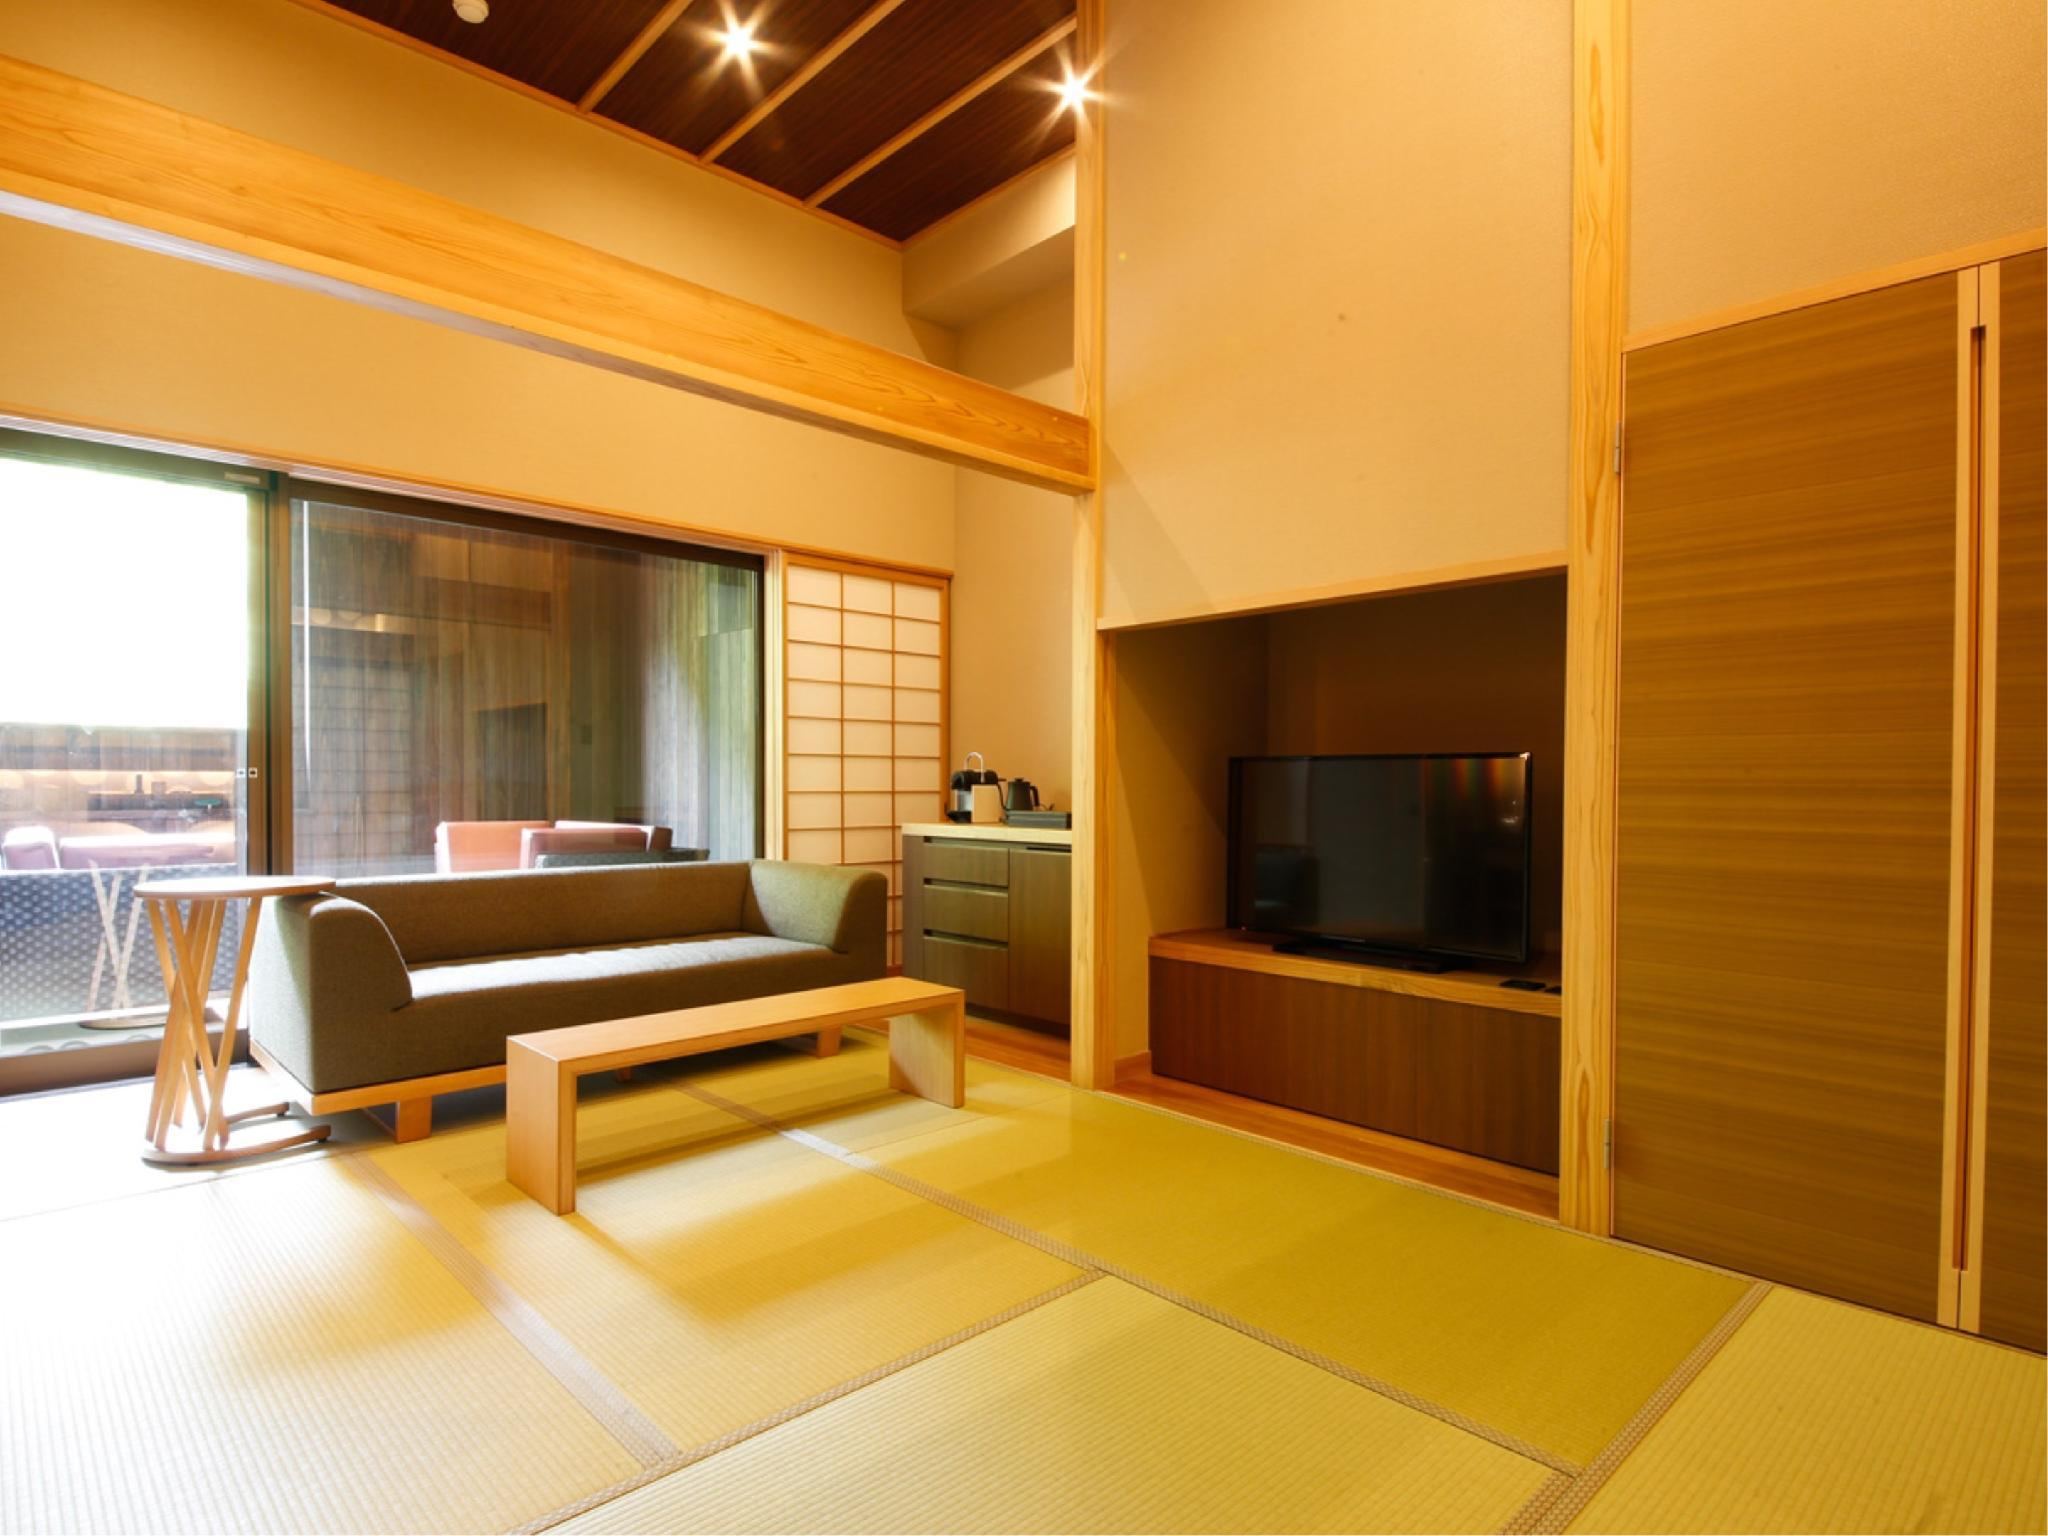 재패니즈 웨스턴 스타일 룸 E (노천탕) (Japanese Western Style Room Type E with Open-Air Spa Bath)